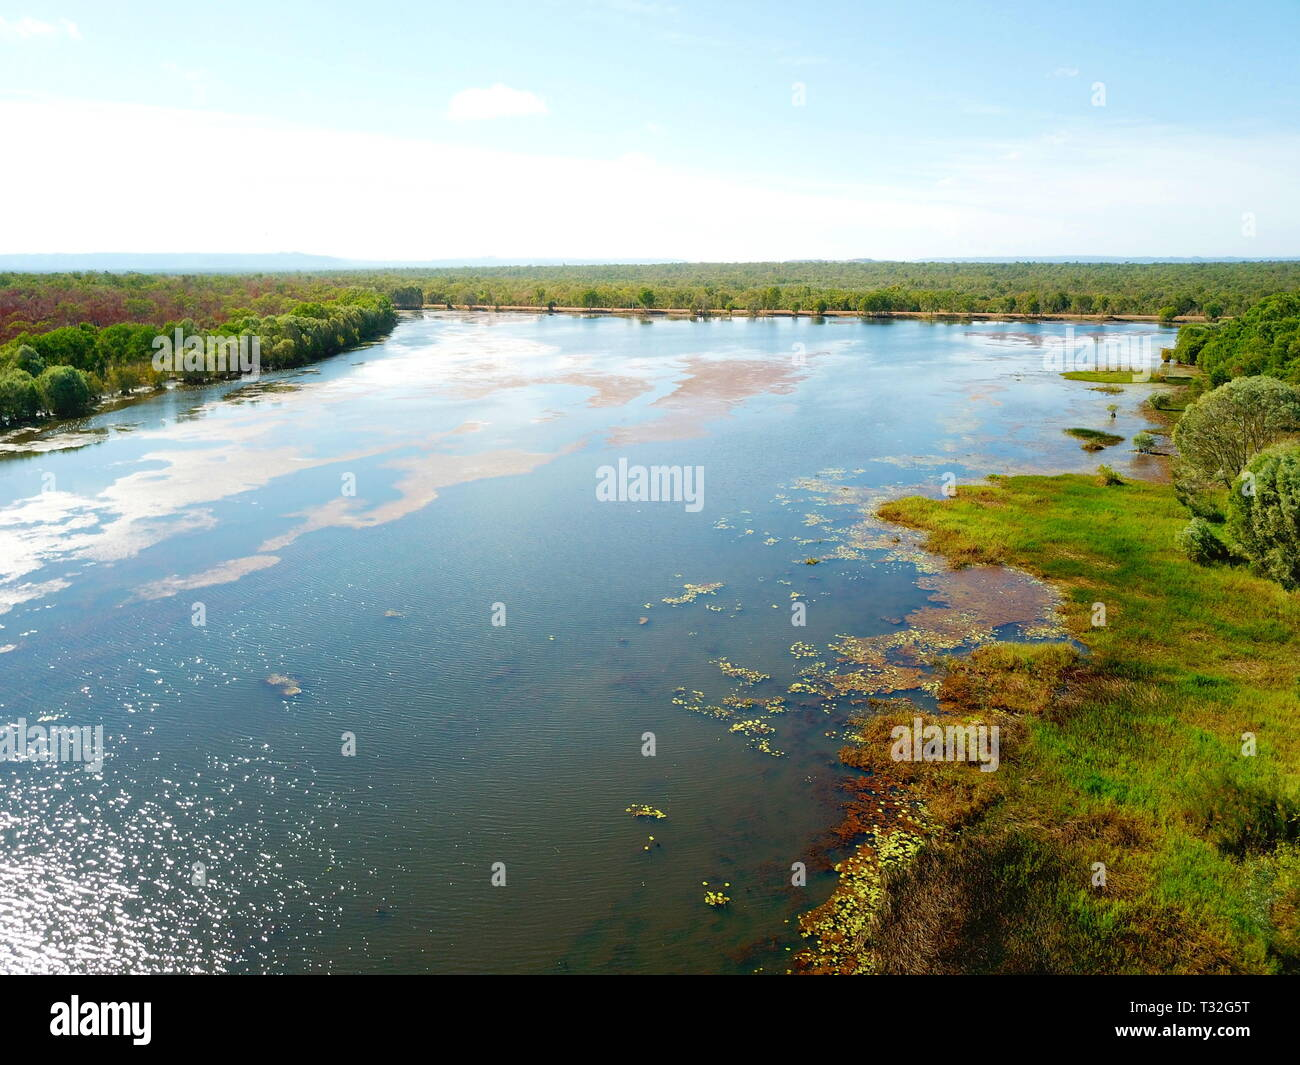 Aerial view of Lake Jabiru in dry season. Jabiru is the main township in Kakadu National Park. Green grass around the lake. Stock Photo